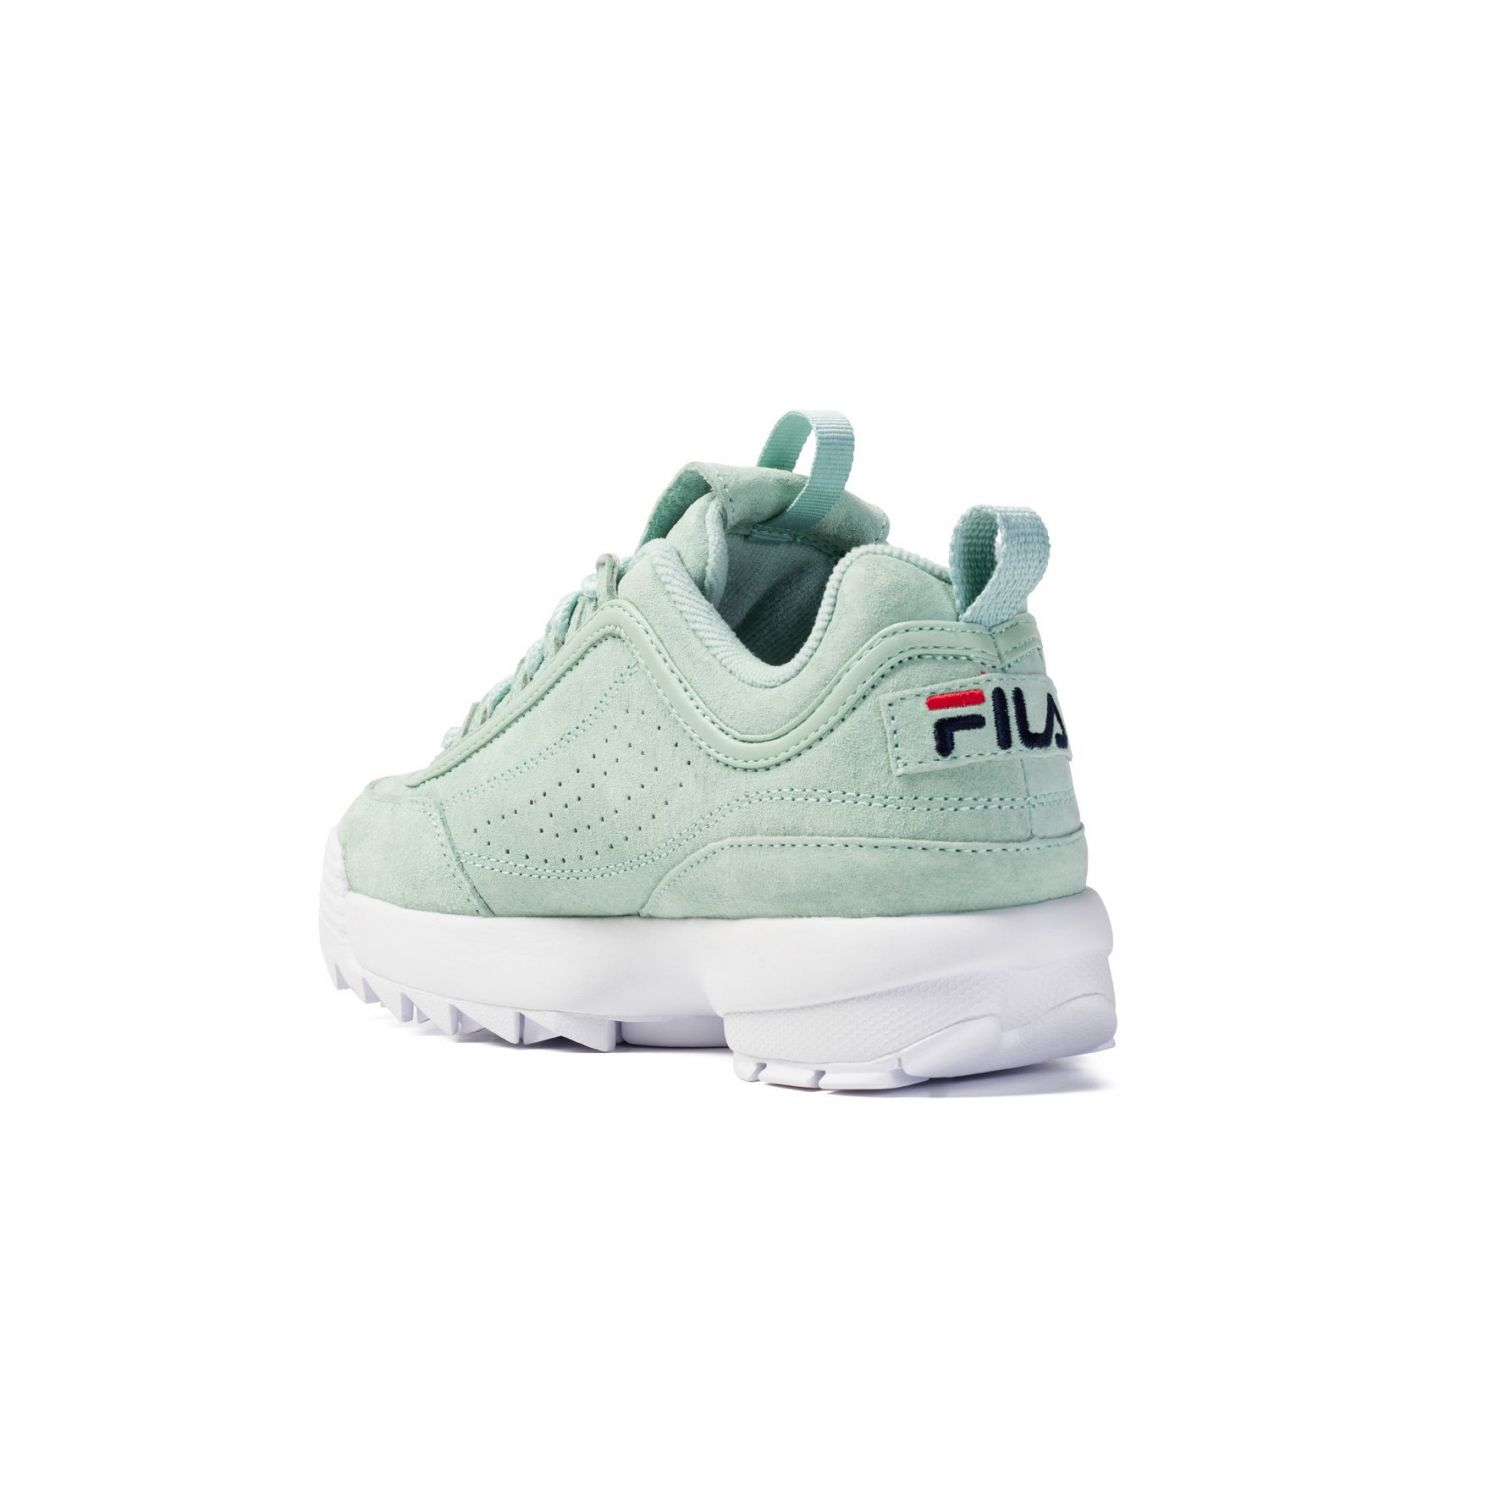 7afc8b143301f Fila - Disruptor S Low Wmn pastel turquoise - 000142...